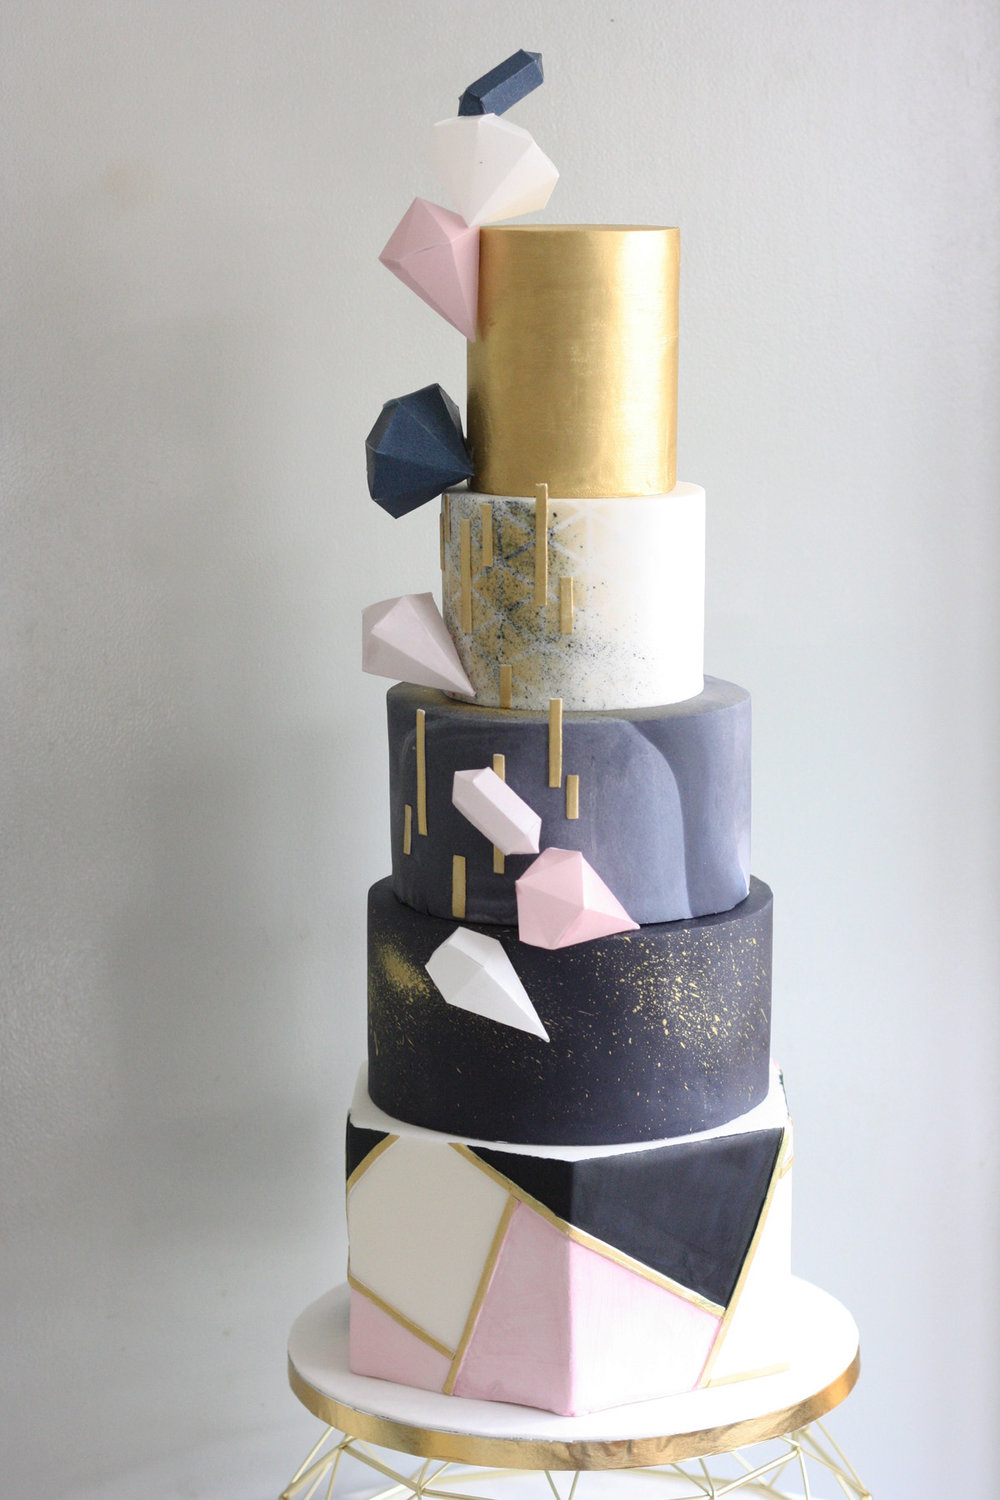 Malarkey Cakes Pink navy and gold geometric wedding cake.jpg